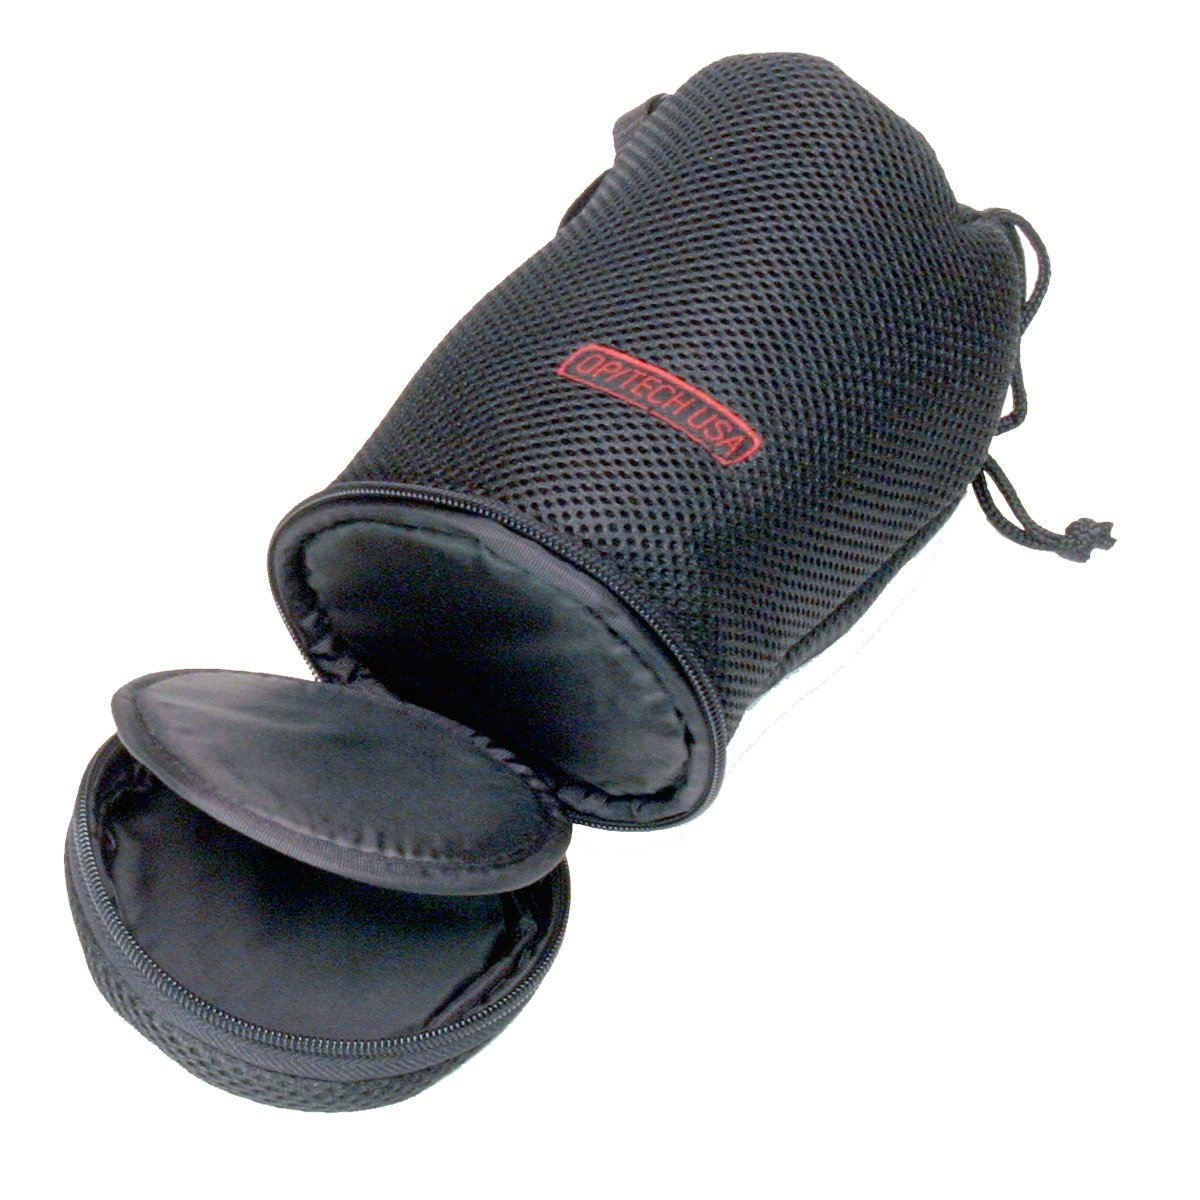 OP/TECH USA Lens/Filter Pouch - Medium by OP/TECH USA